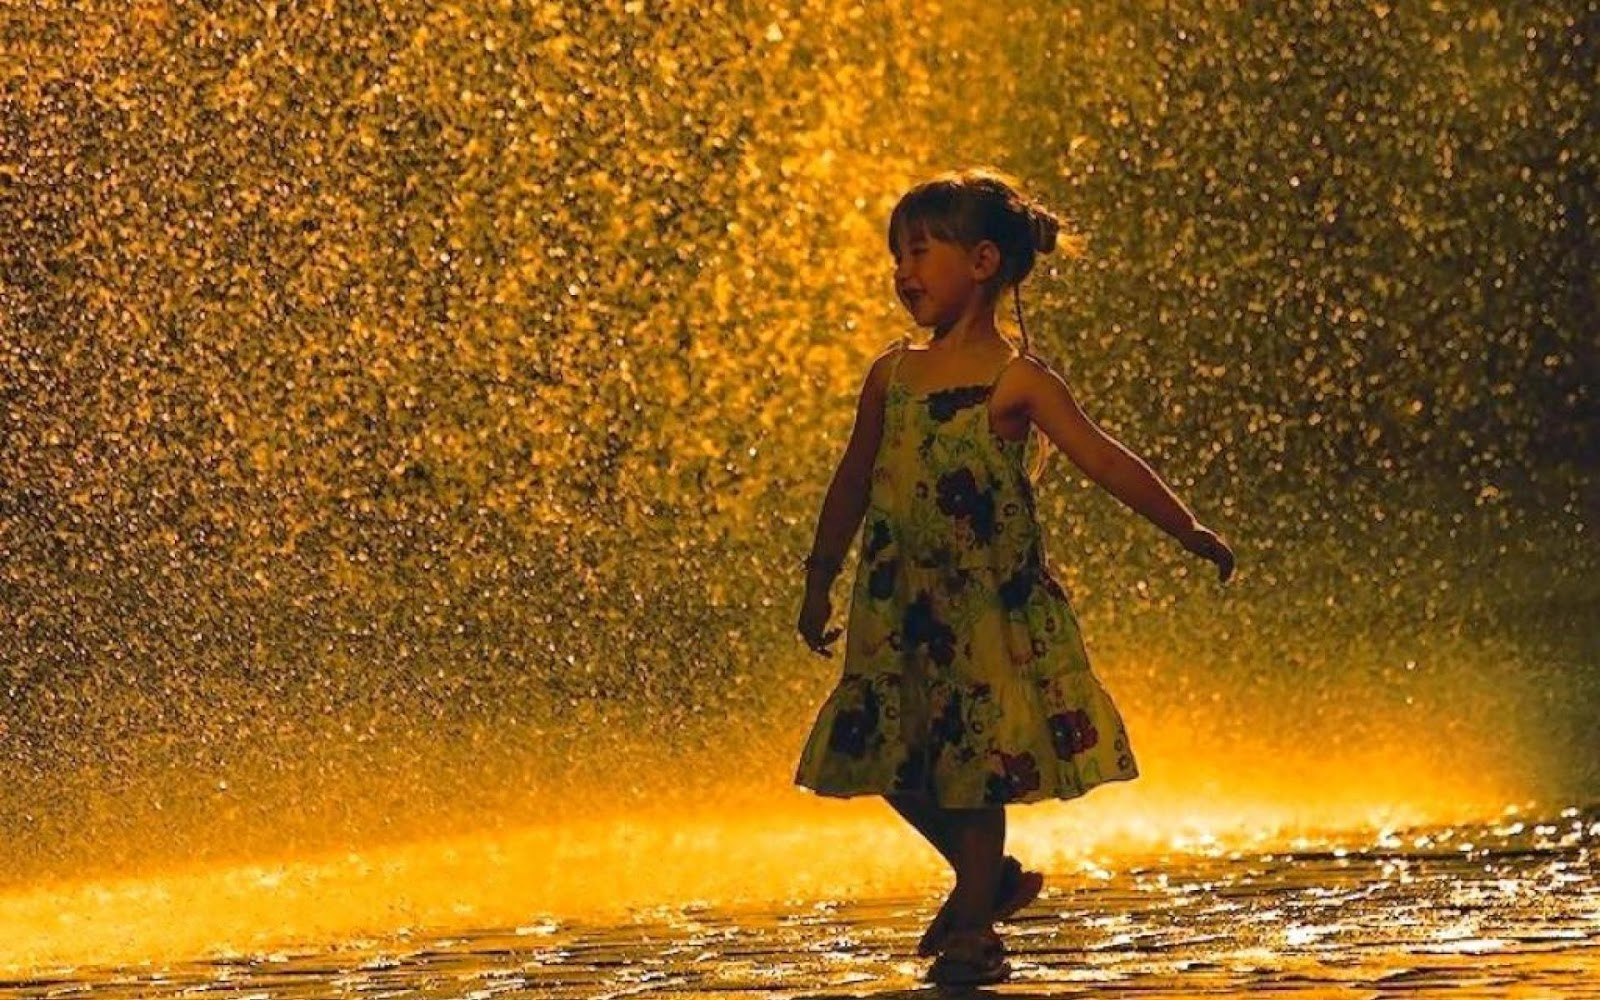 Wallpaper Sad Animated Girl Dancing In The Rain Wallpapers High Quality Download Free